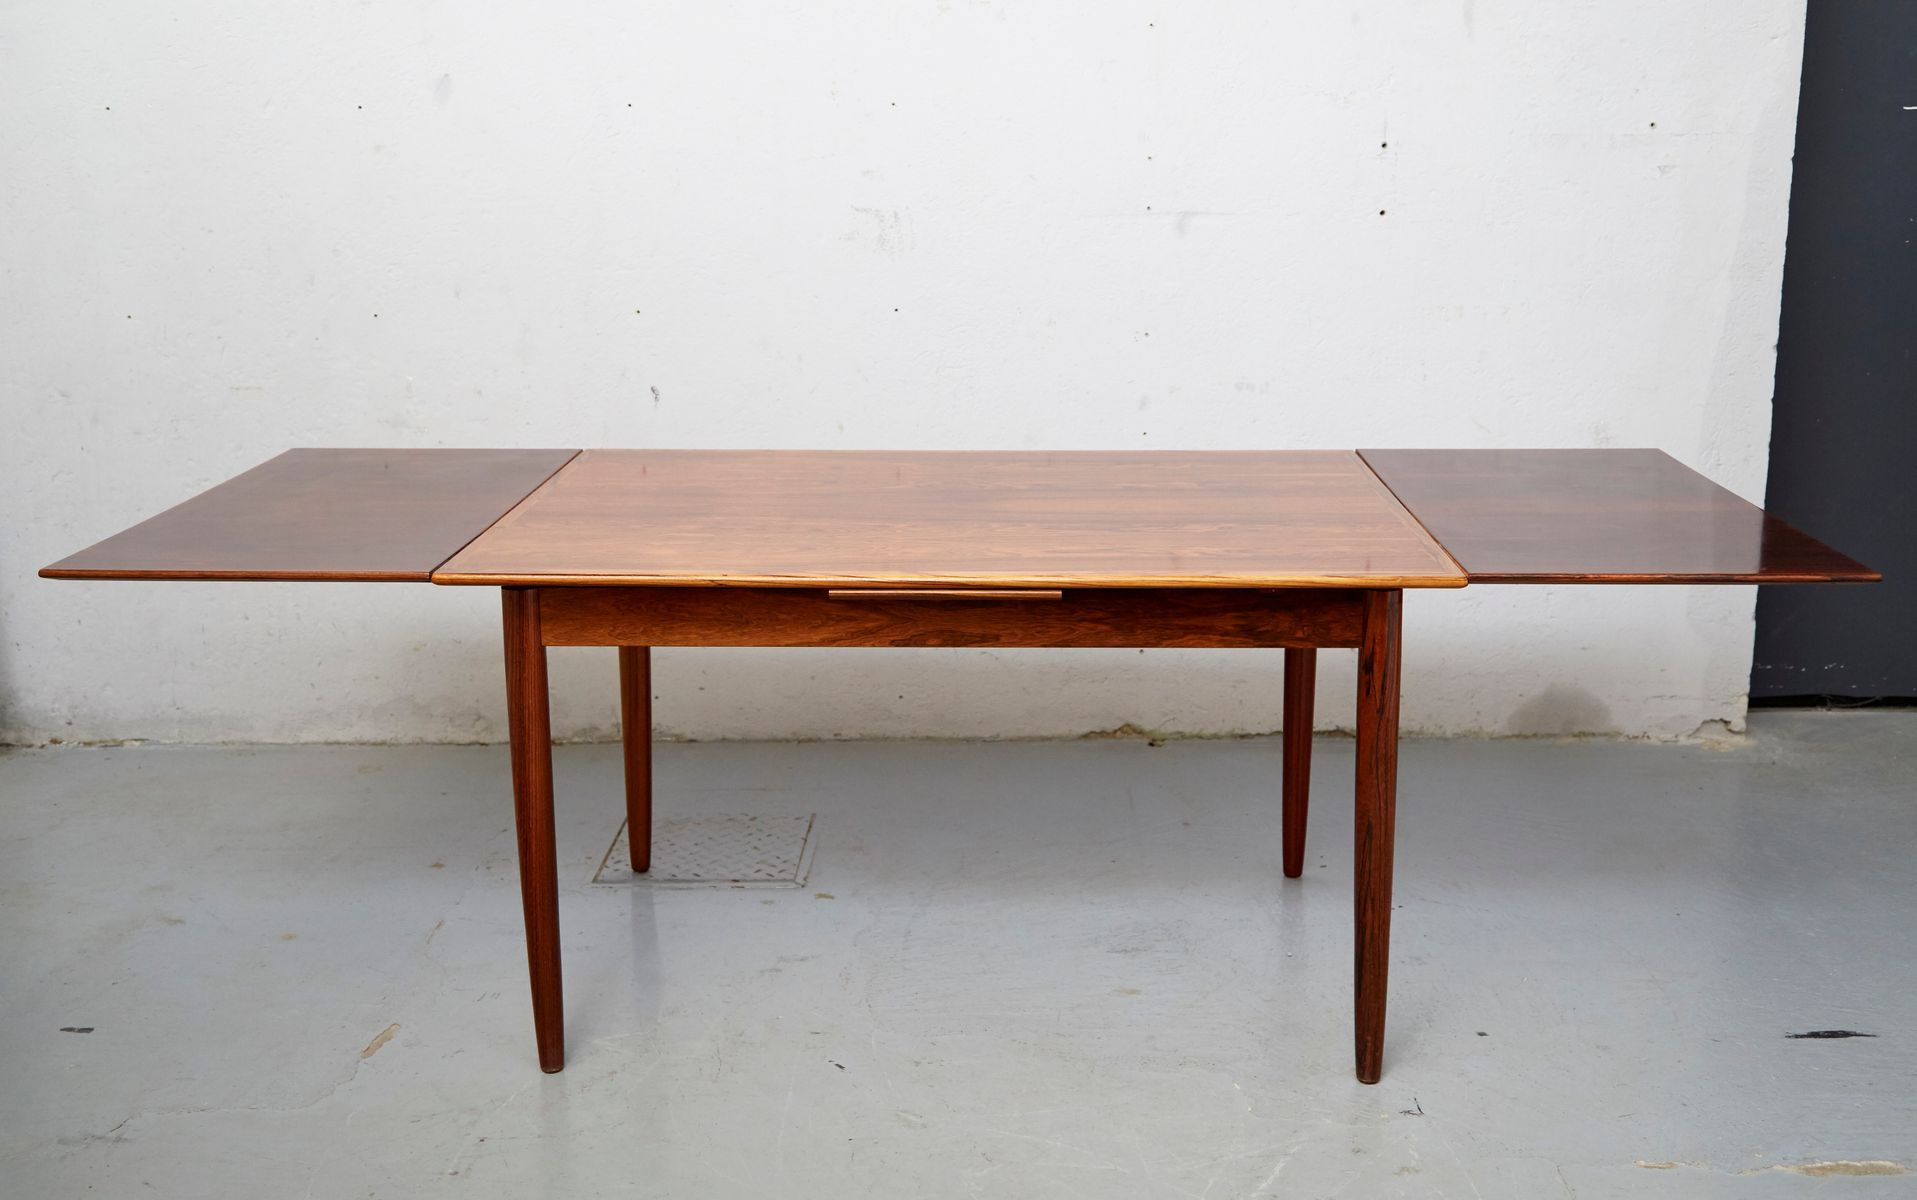 Extendable Mid Century Rosewood Dining Table for sale at  : extendable mid century rosewood dining table 3 from www.pamono.com size 1918 x 1200 jpeg 109kB